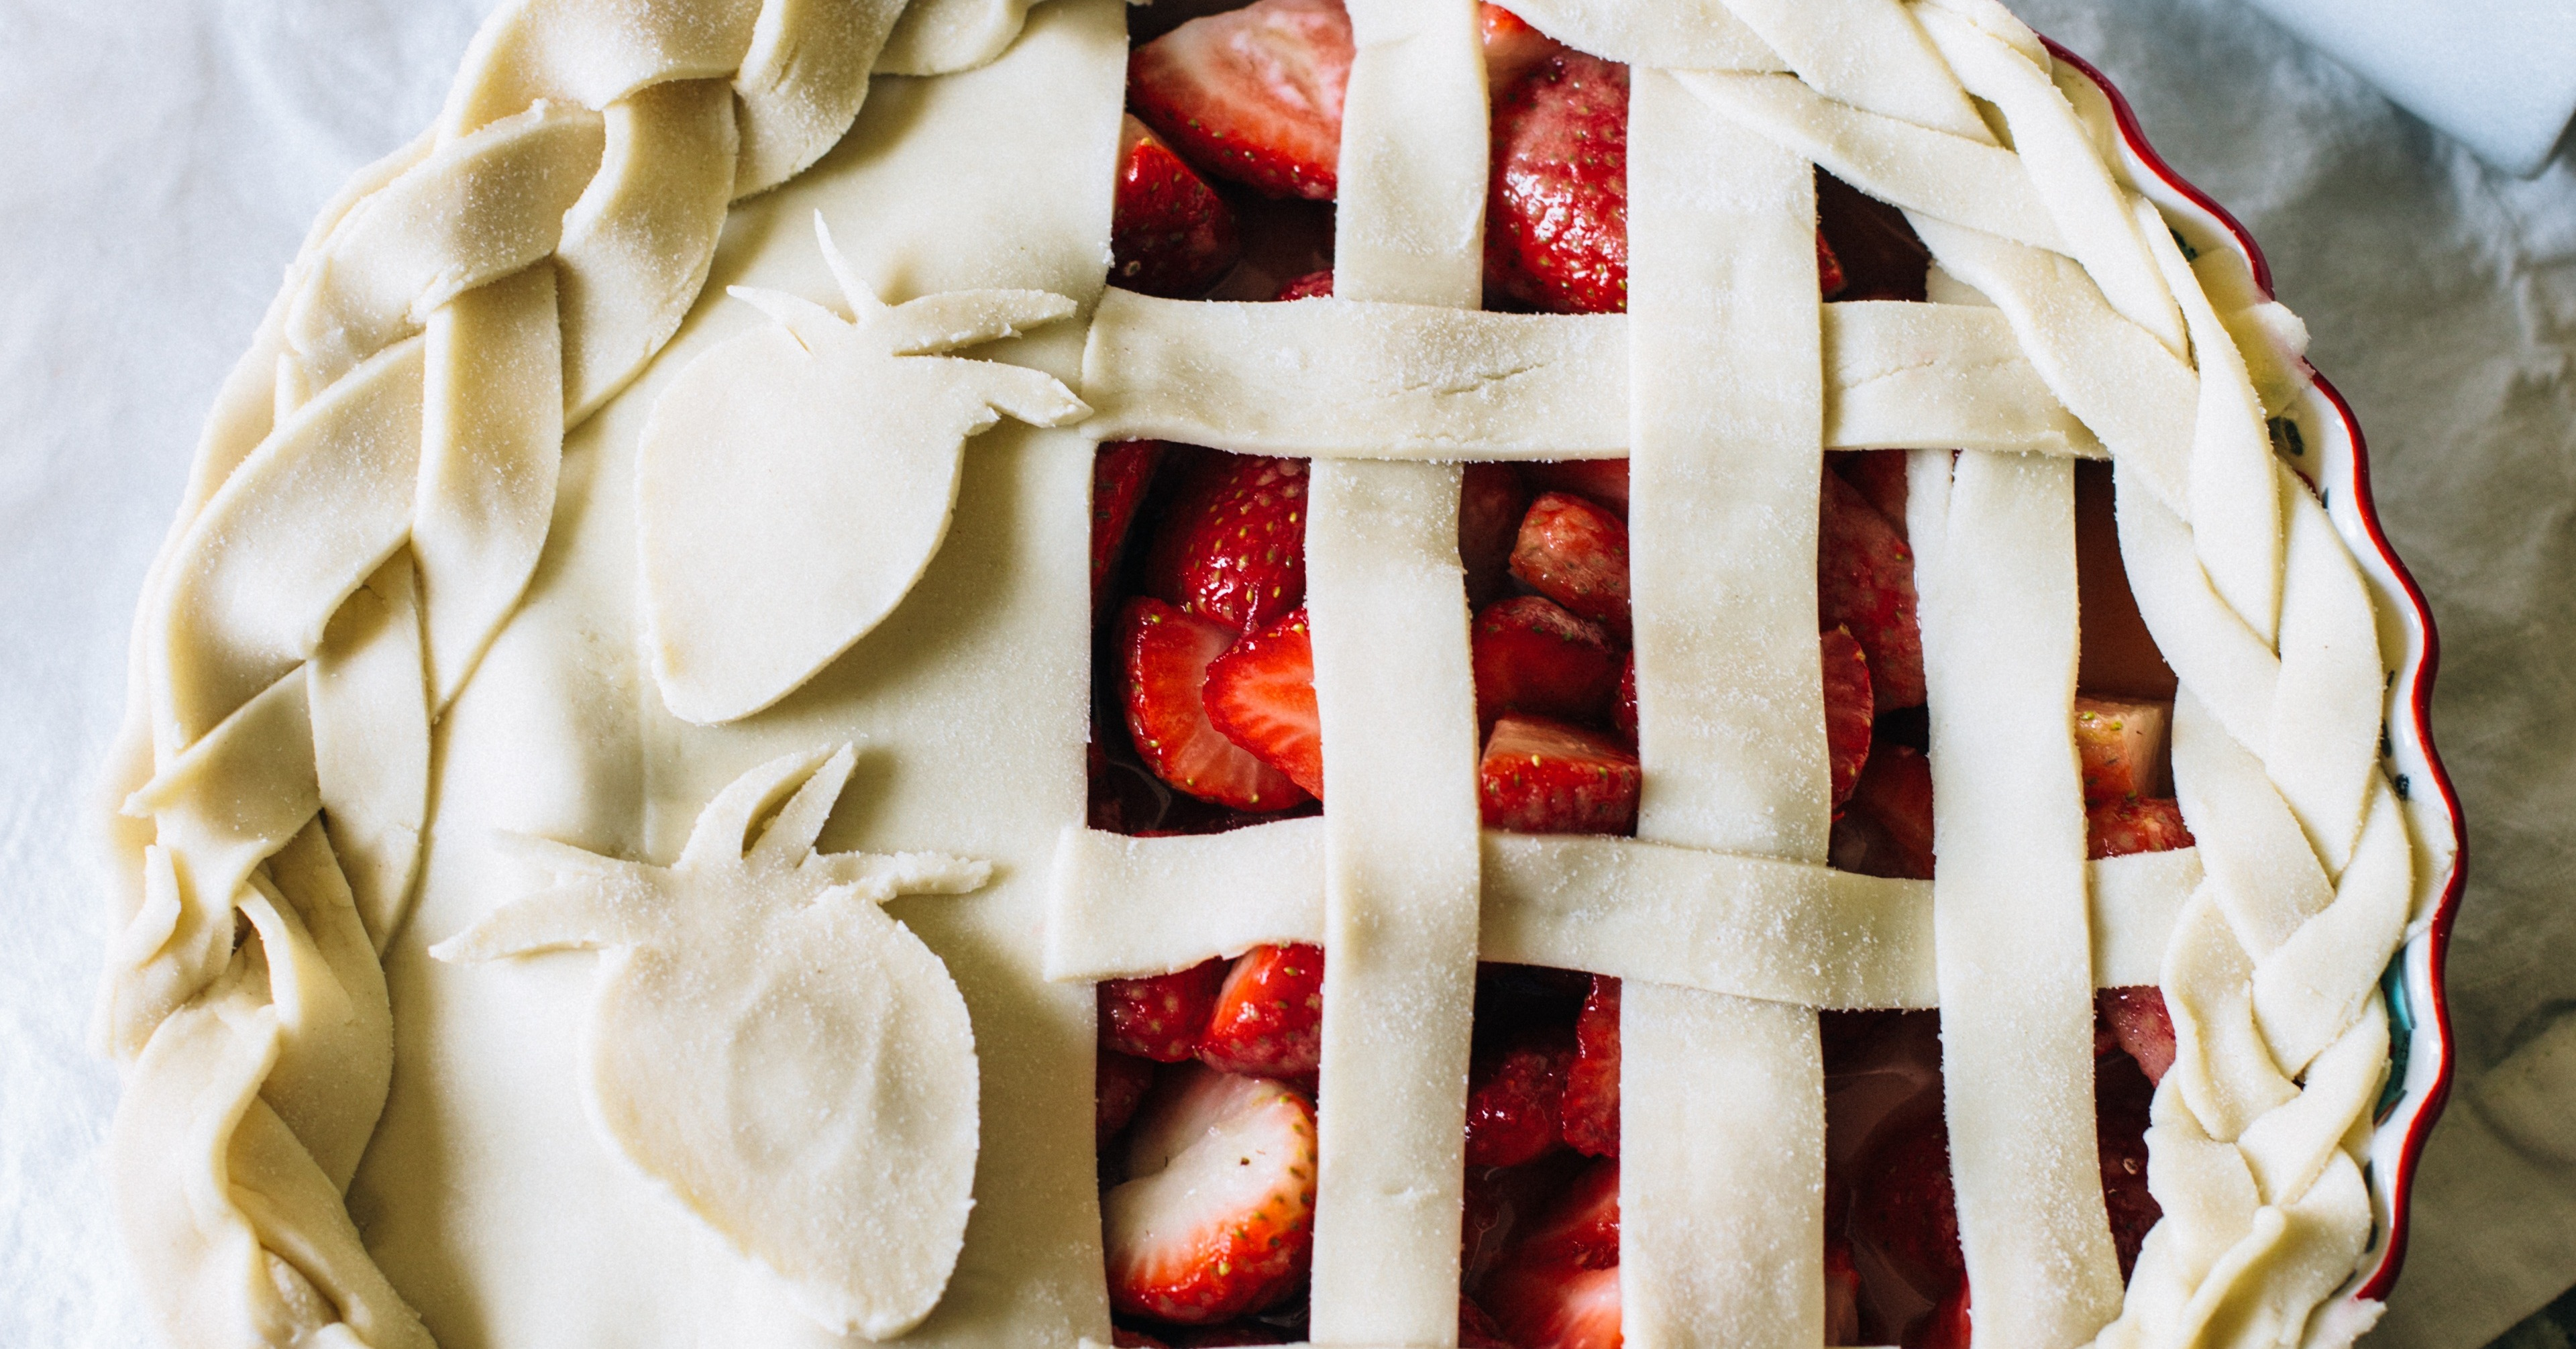 Cheat Day Recipes for National Pie Day